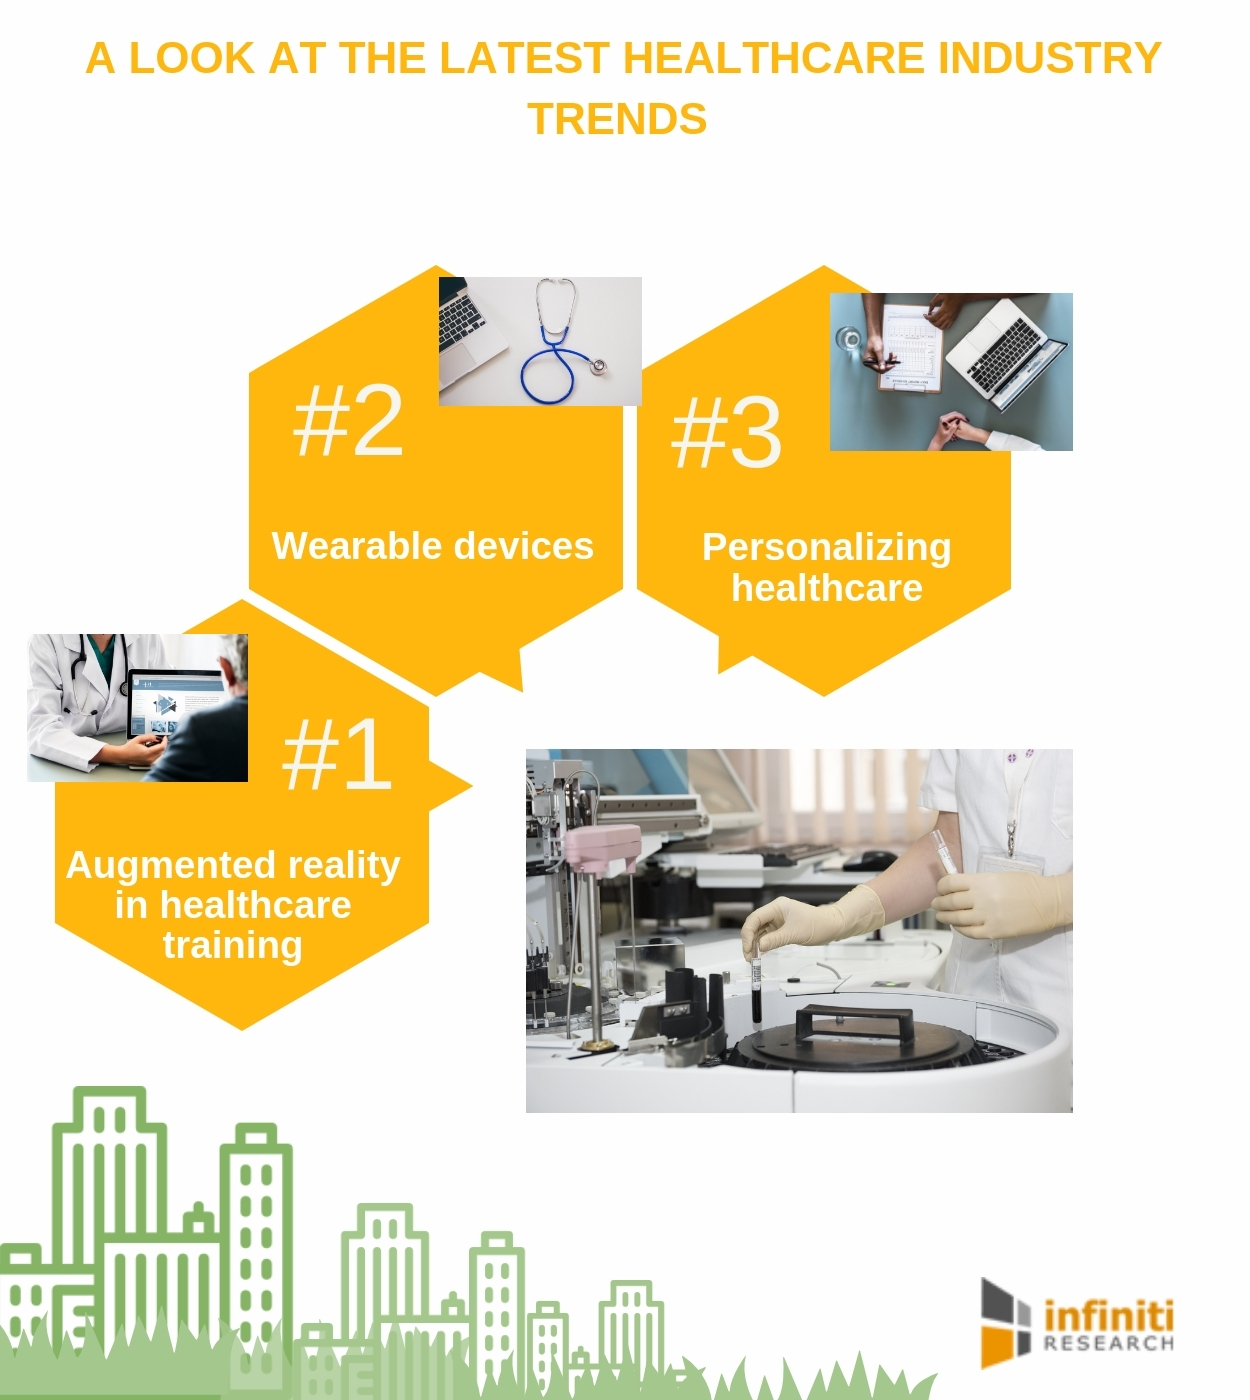 Business Wire Contact | A Look At The Latest Healthcare Industry Trends Infiniti Research